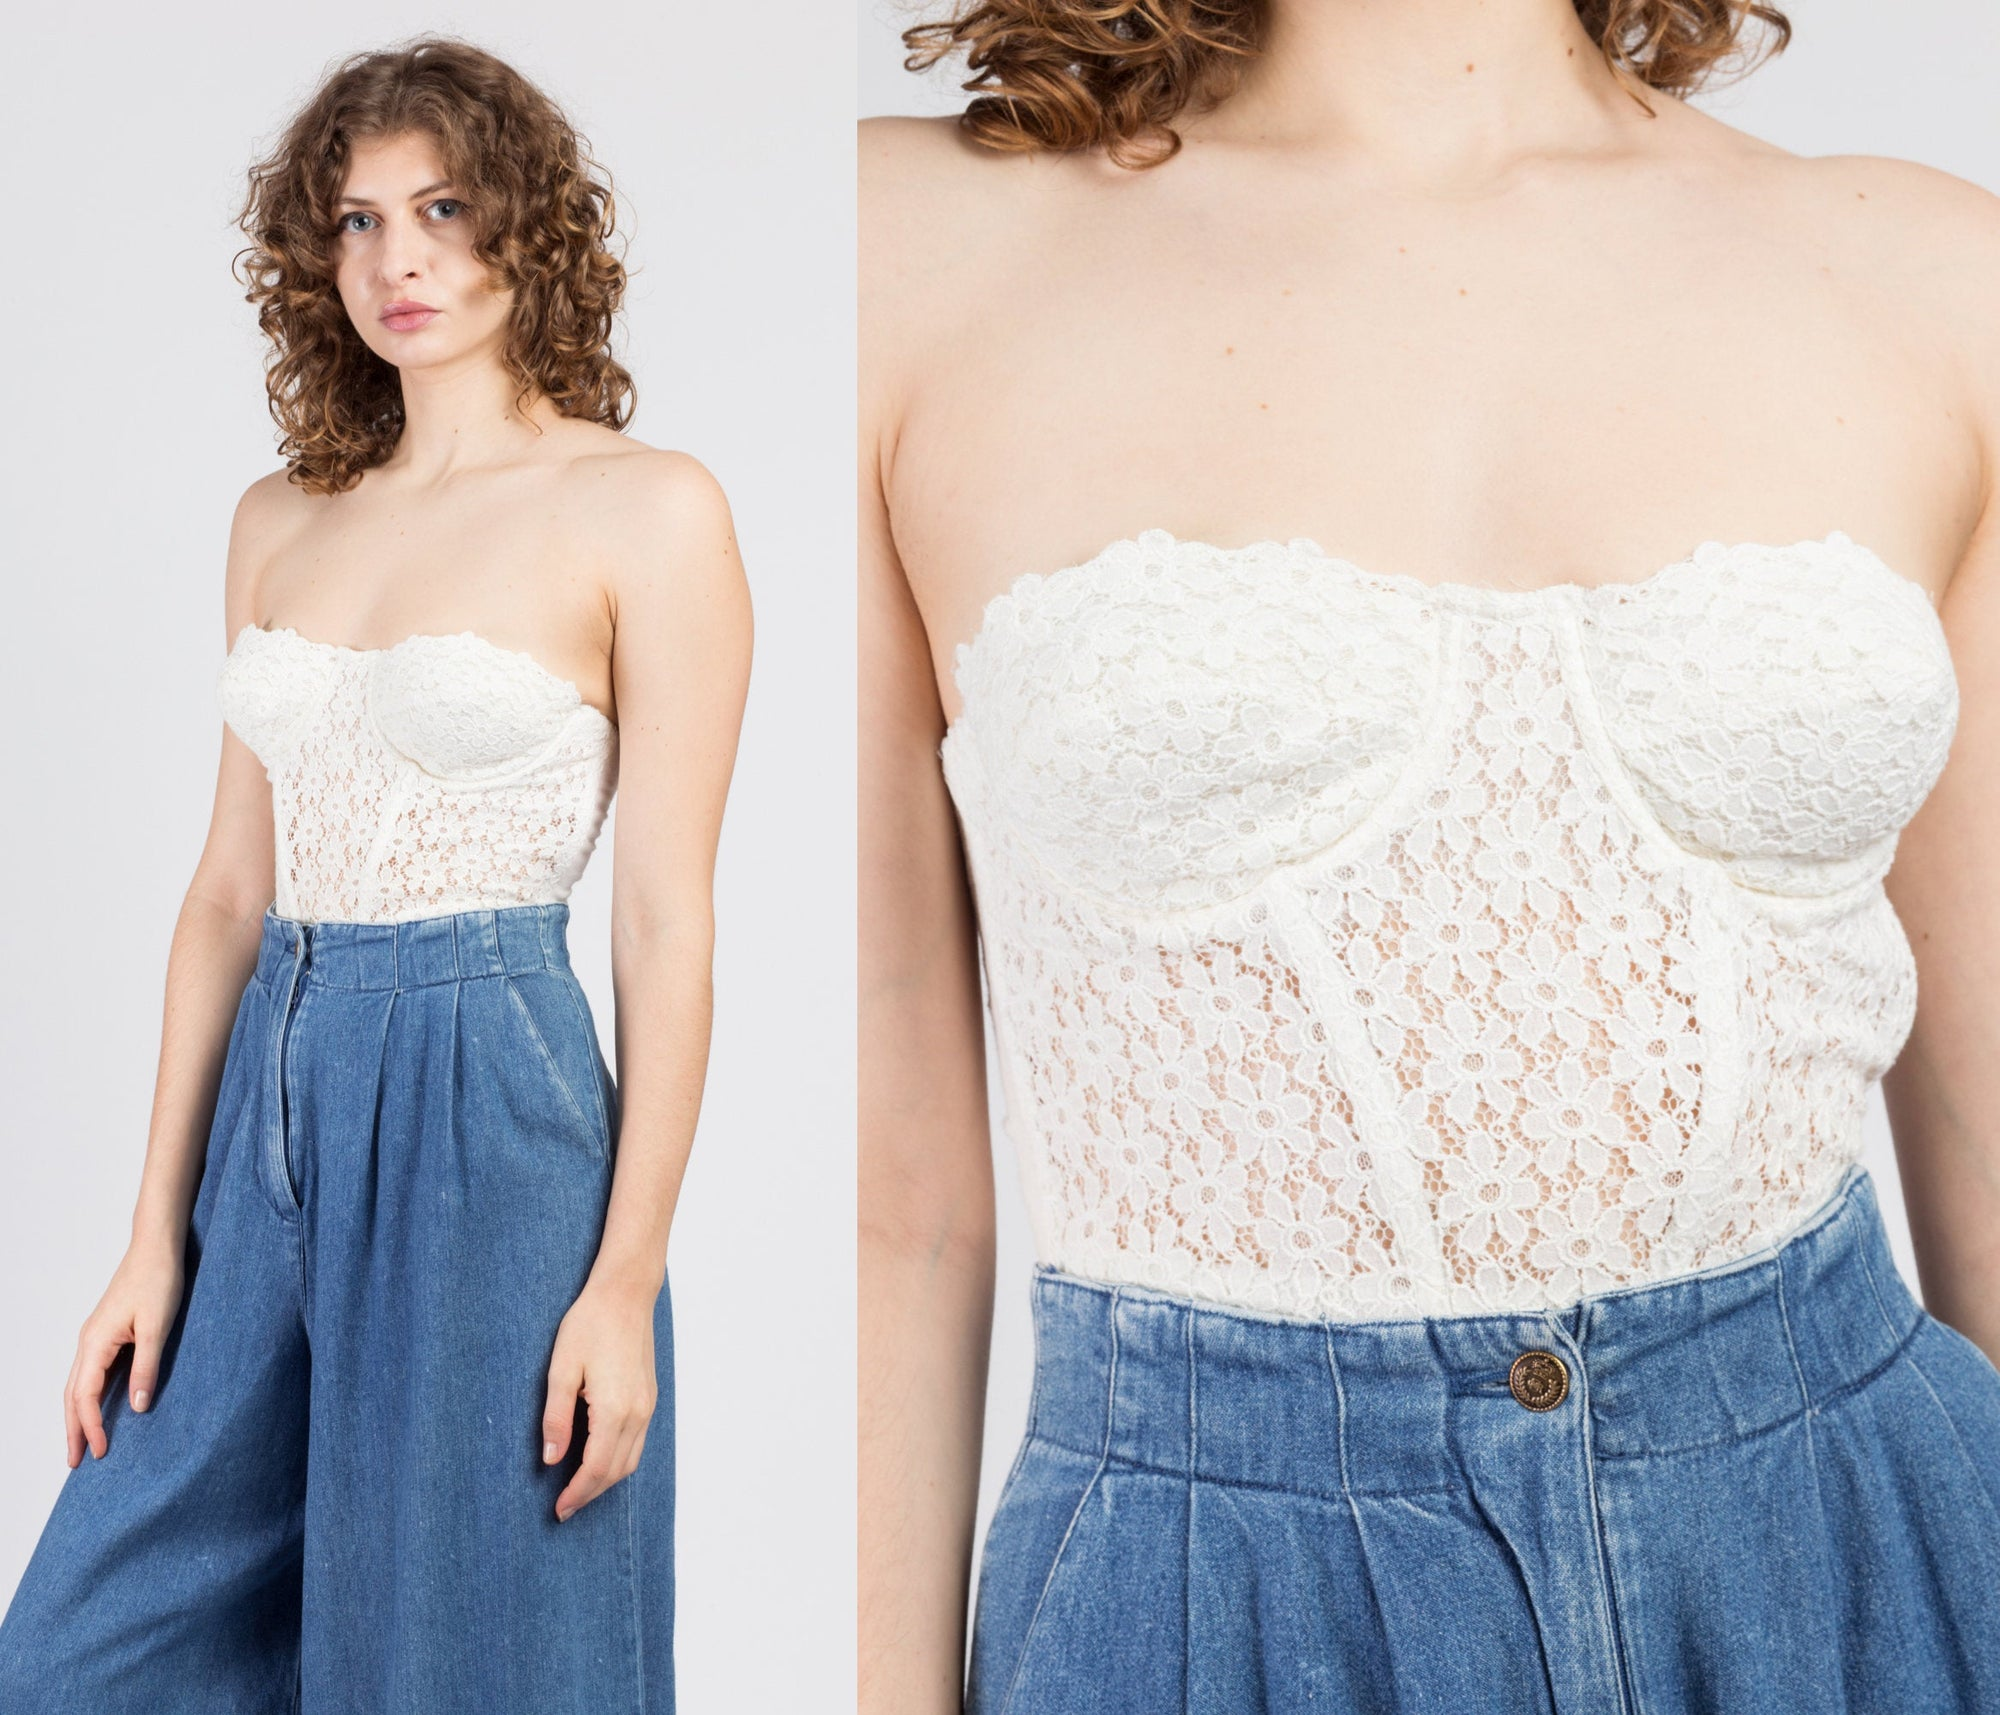 70s 80s White Floral Bustier - 36B